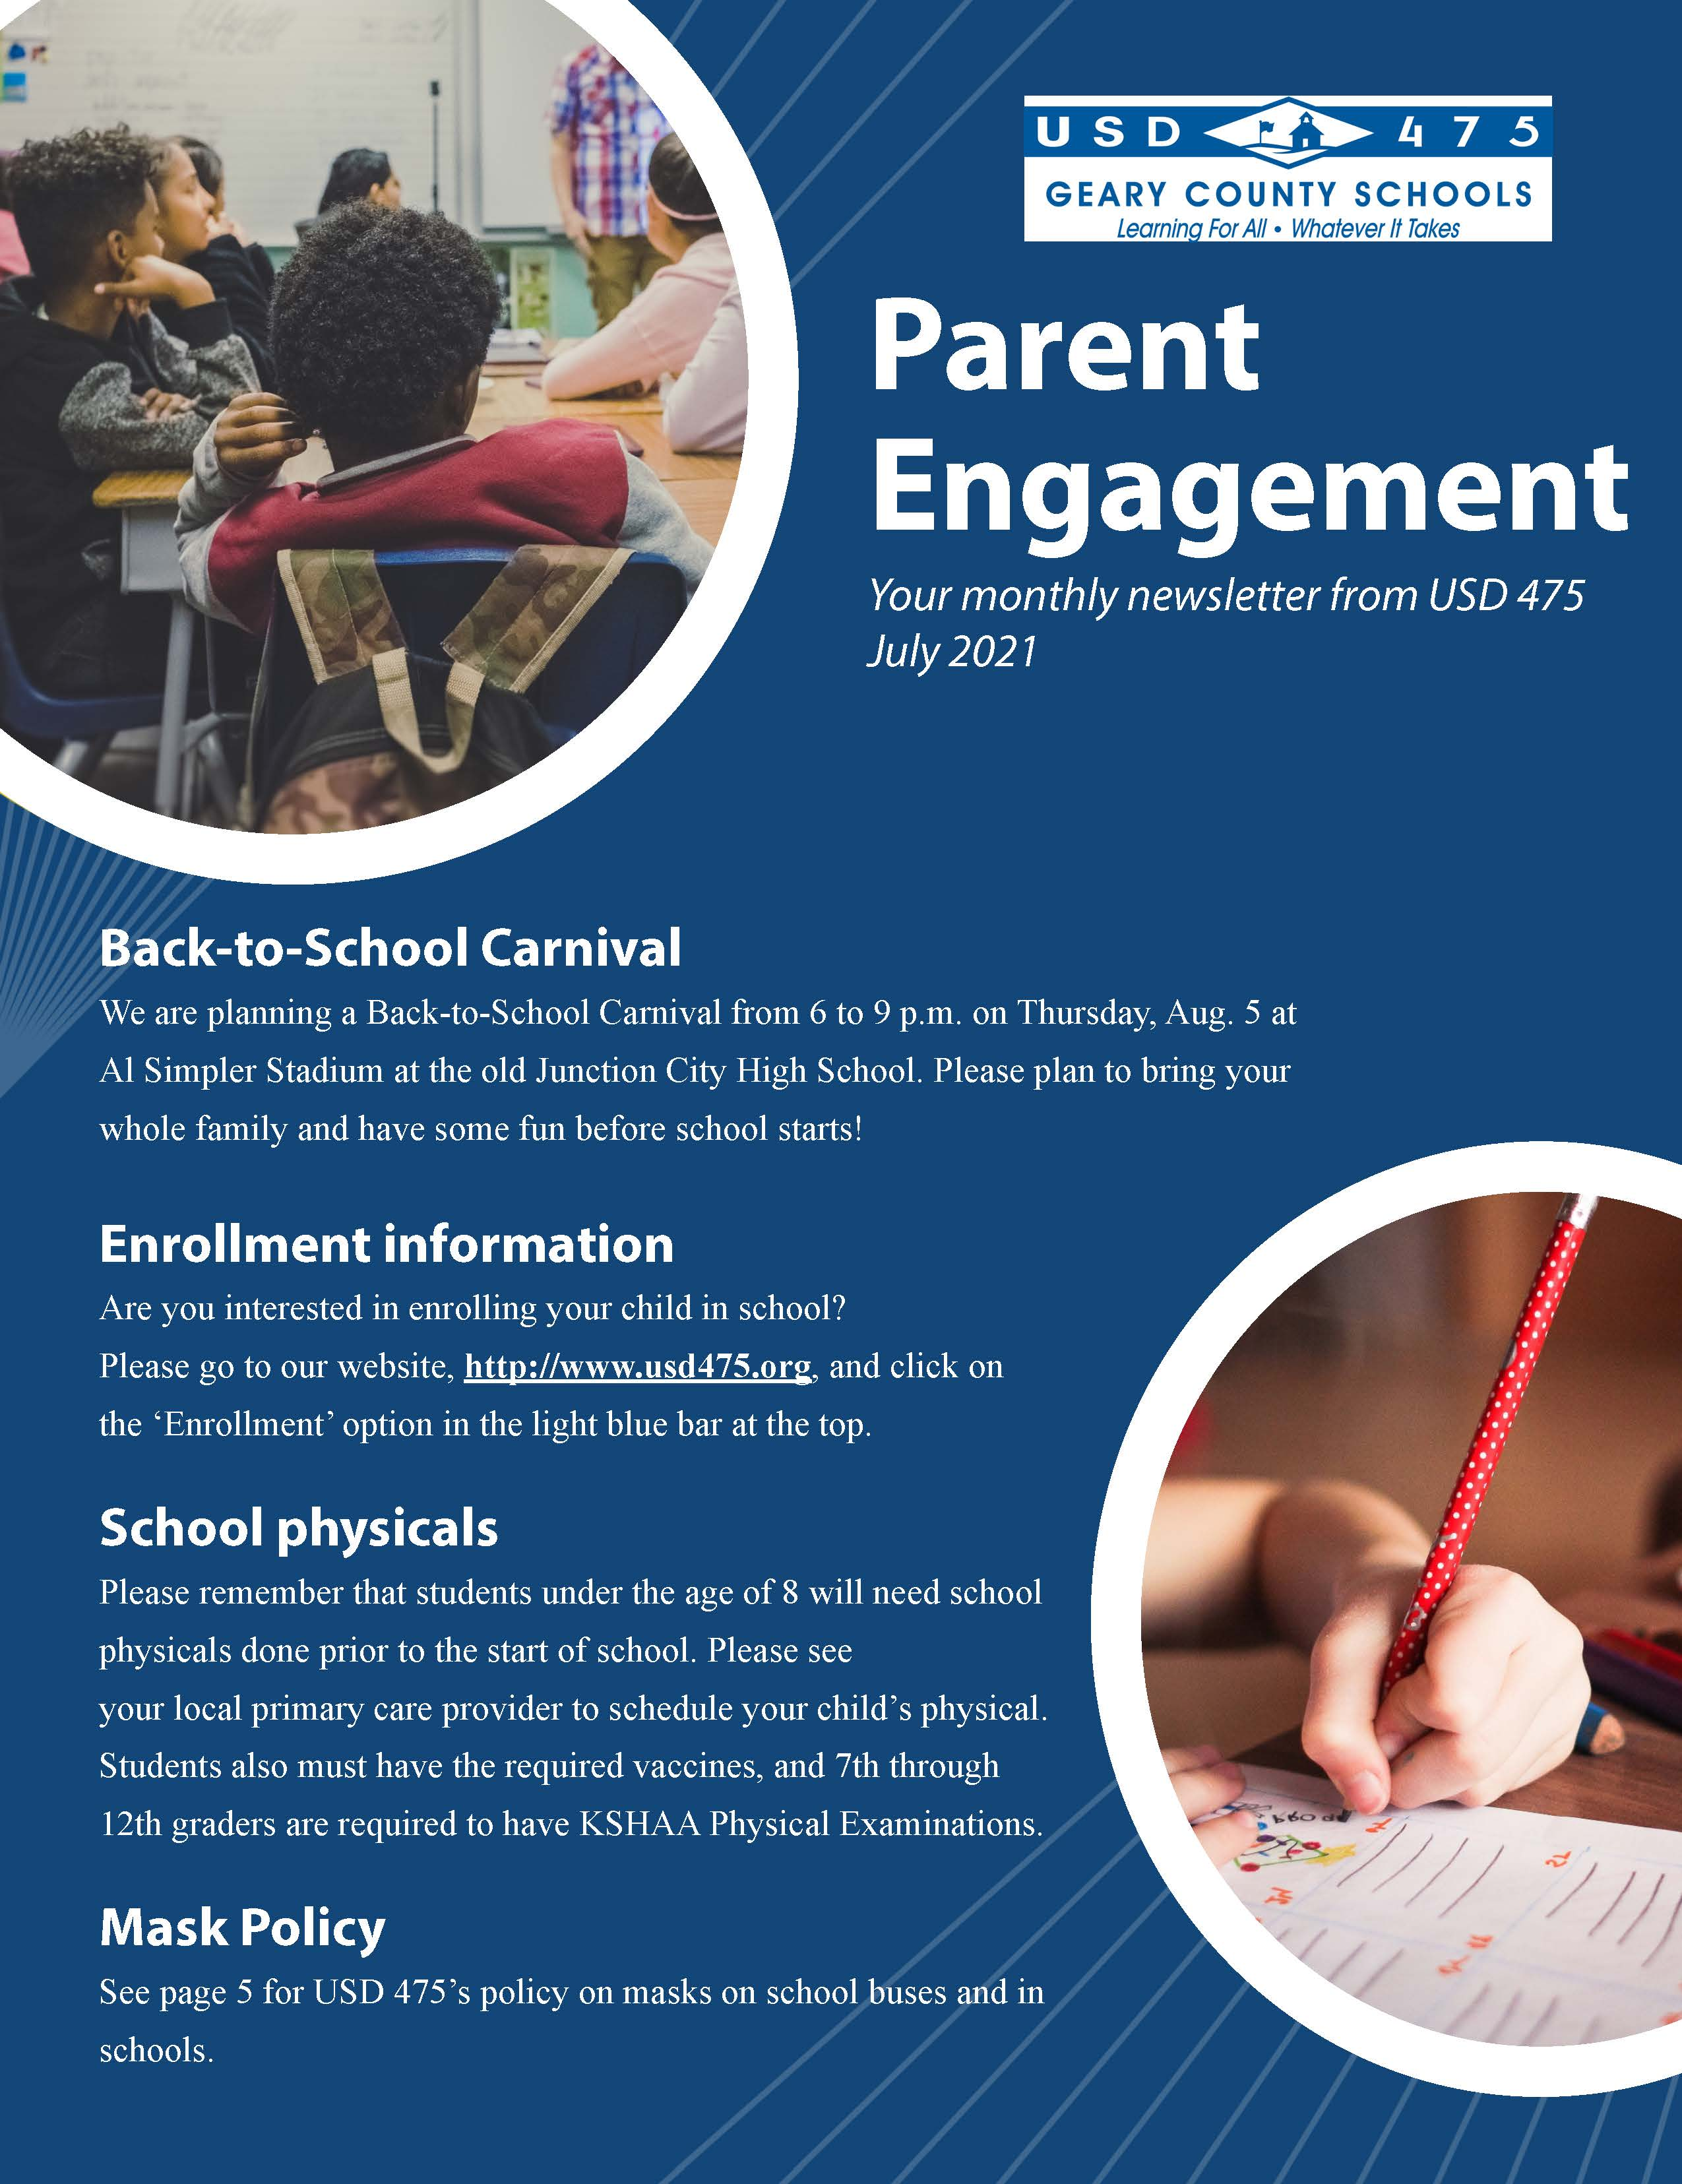 USD 475 Parent Engagement Newsletter Page 1 in English